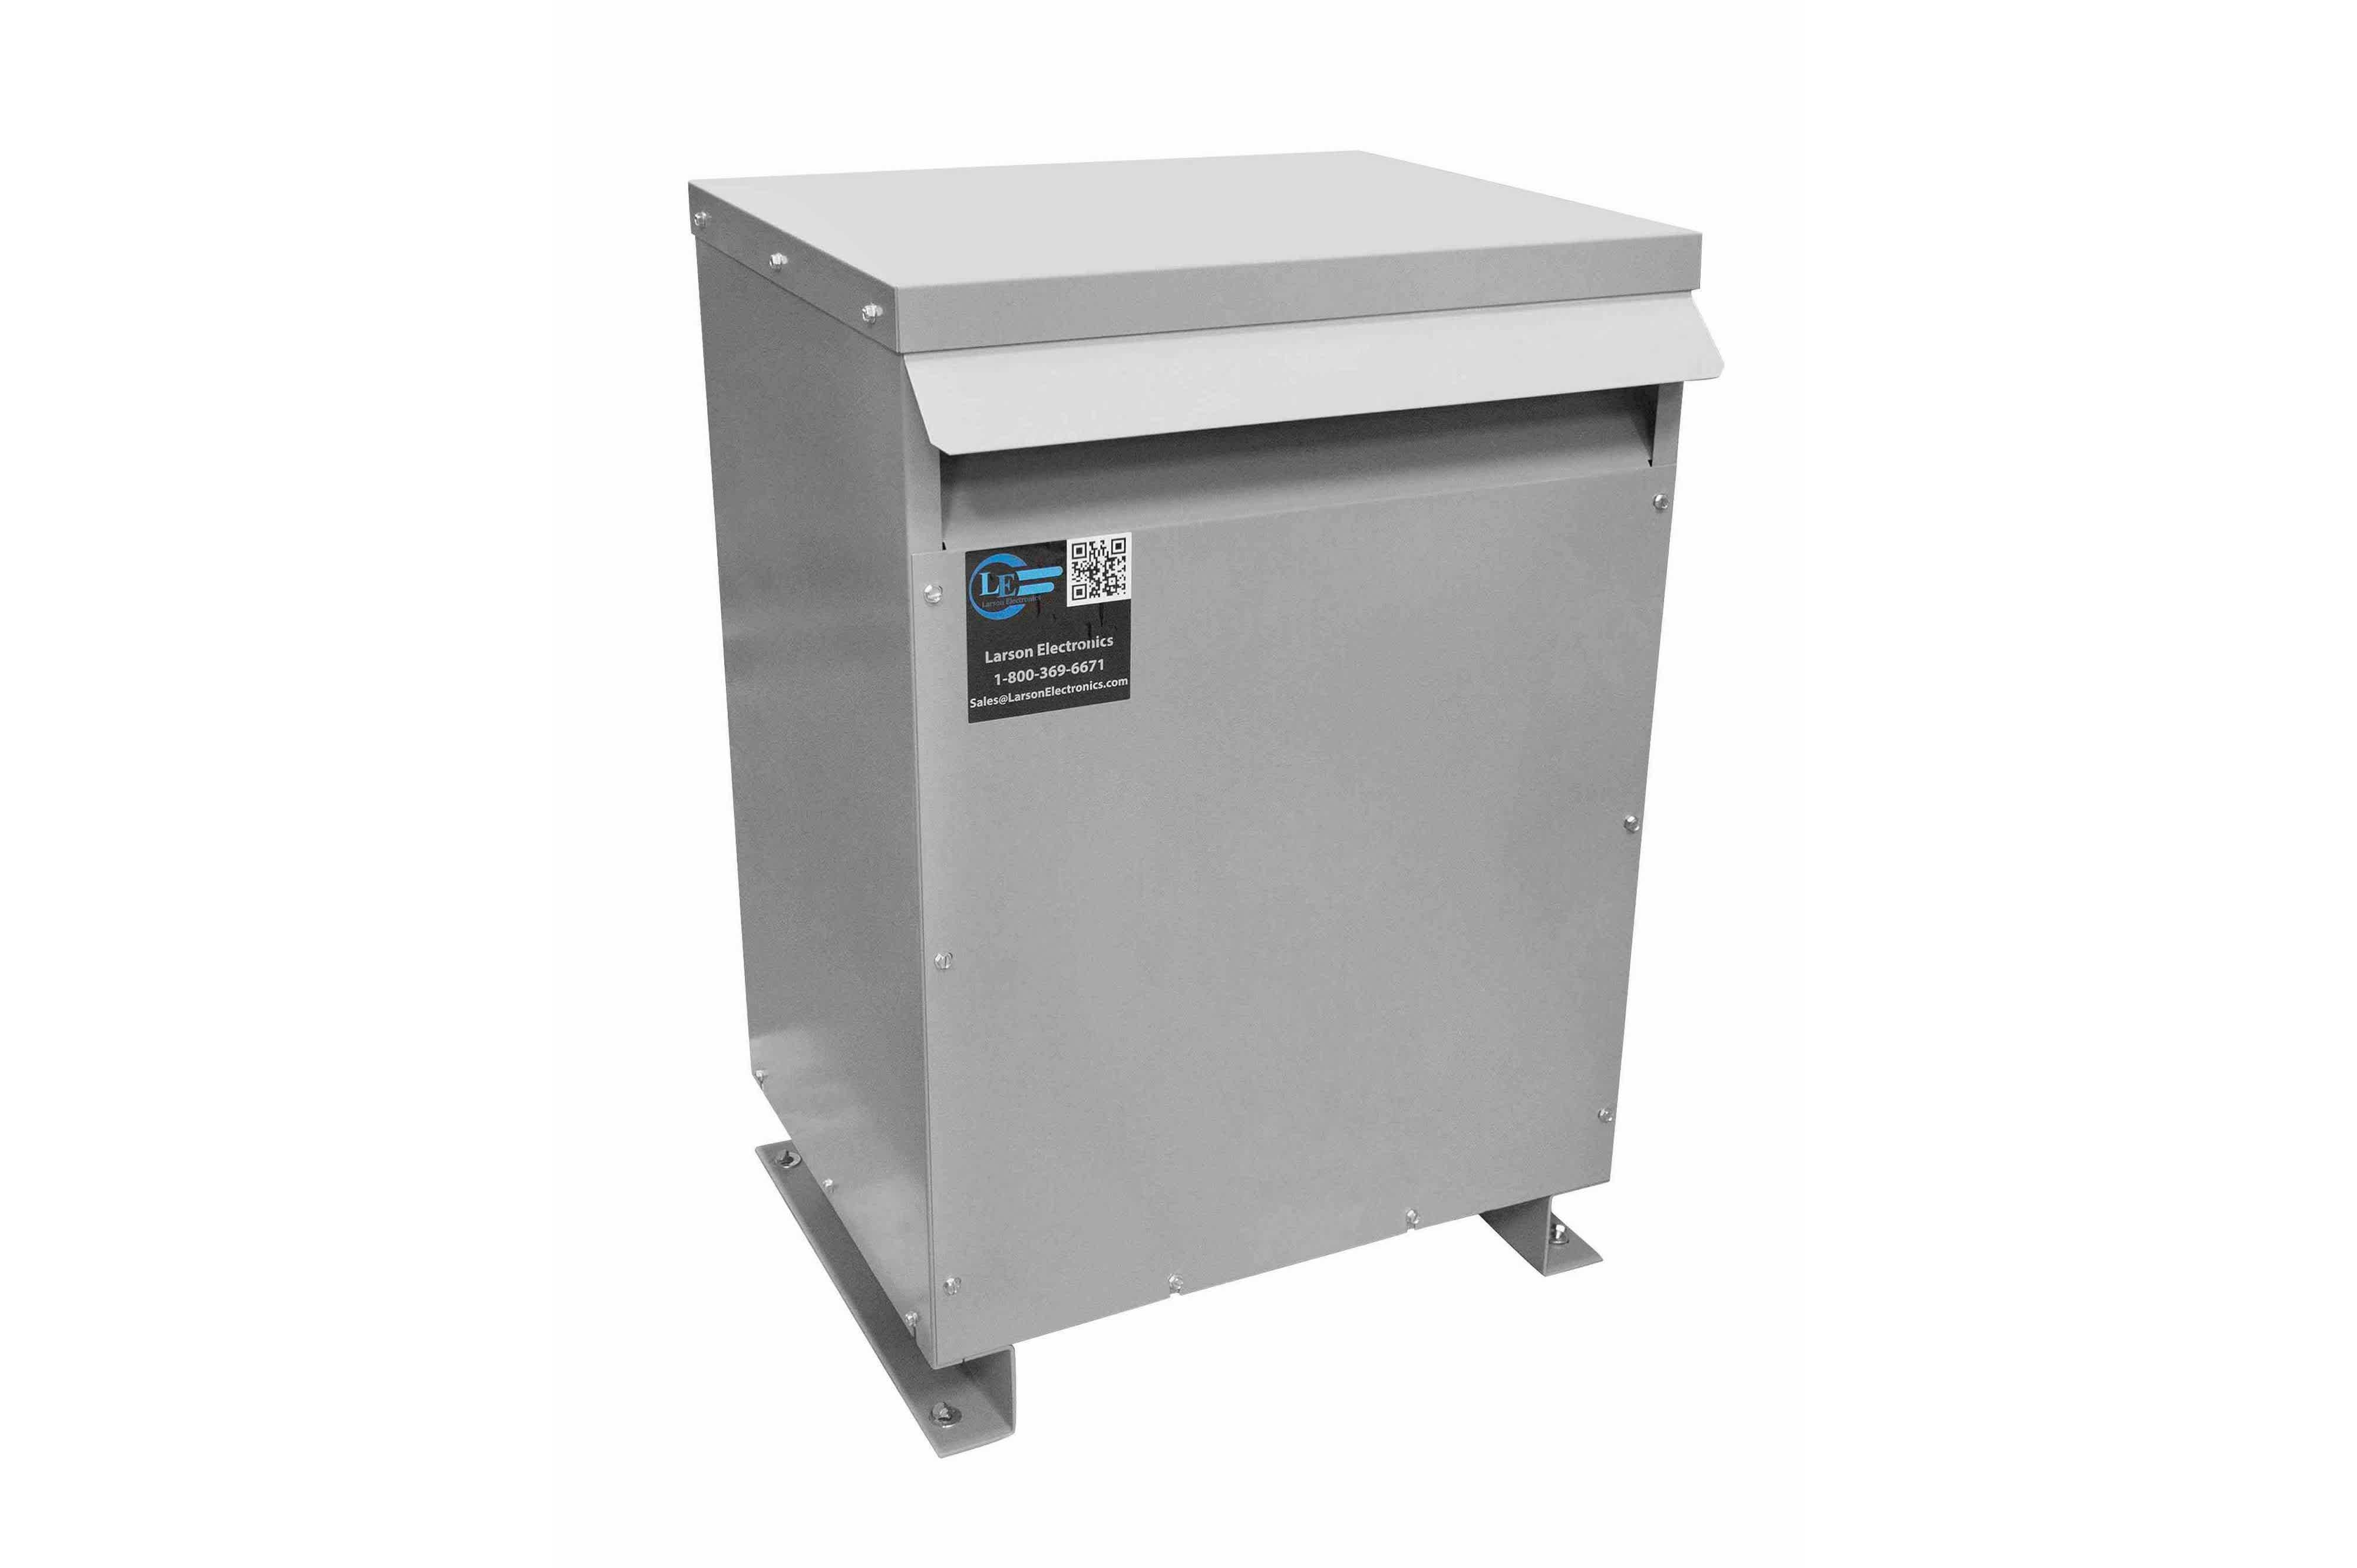 1000 kVA 3PH Isolation Transformer, 460V Delta Primary, 240 Delta Secondary, N3R, Ventilated, 60 Hz